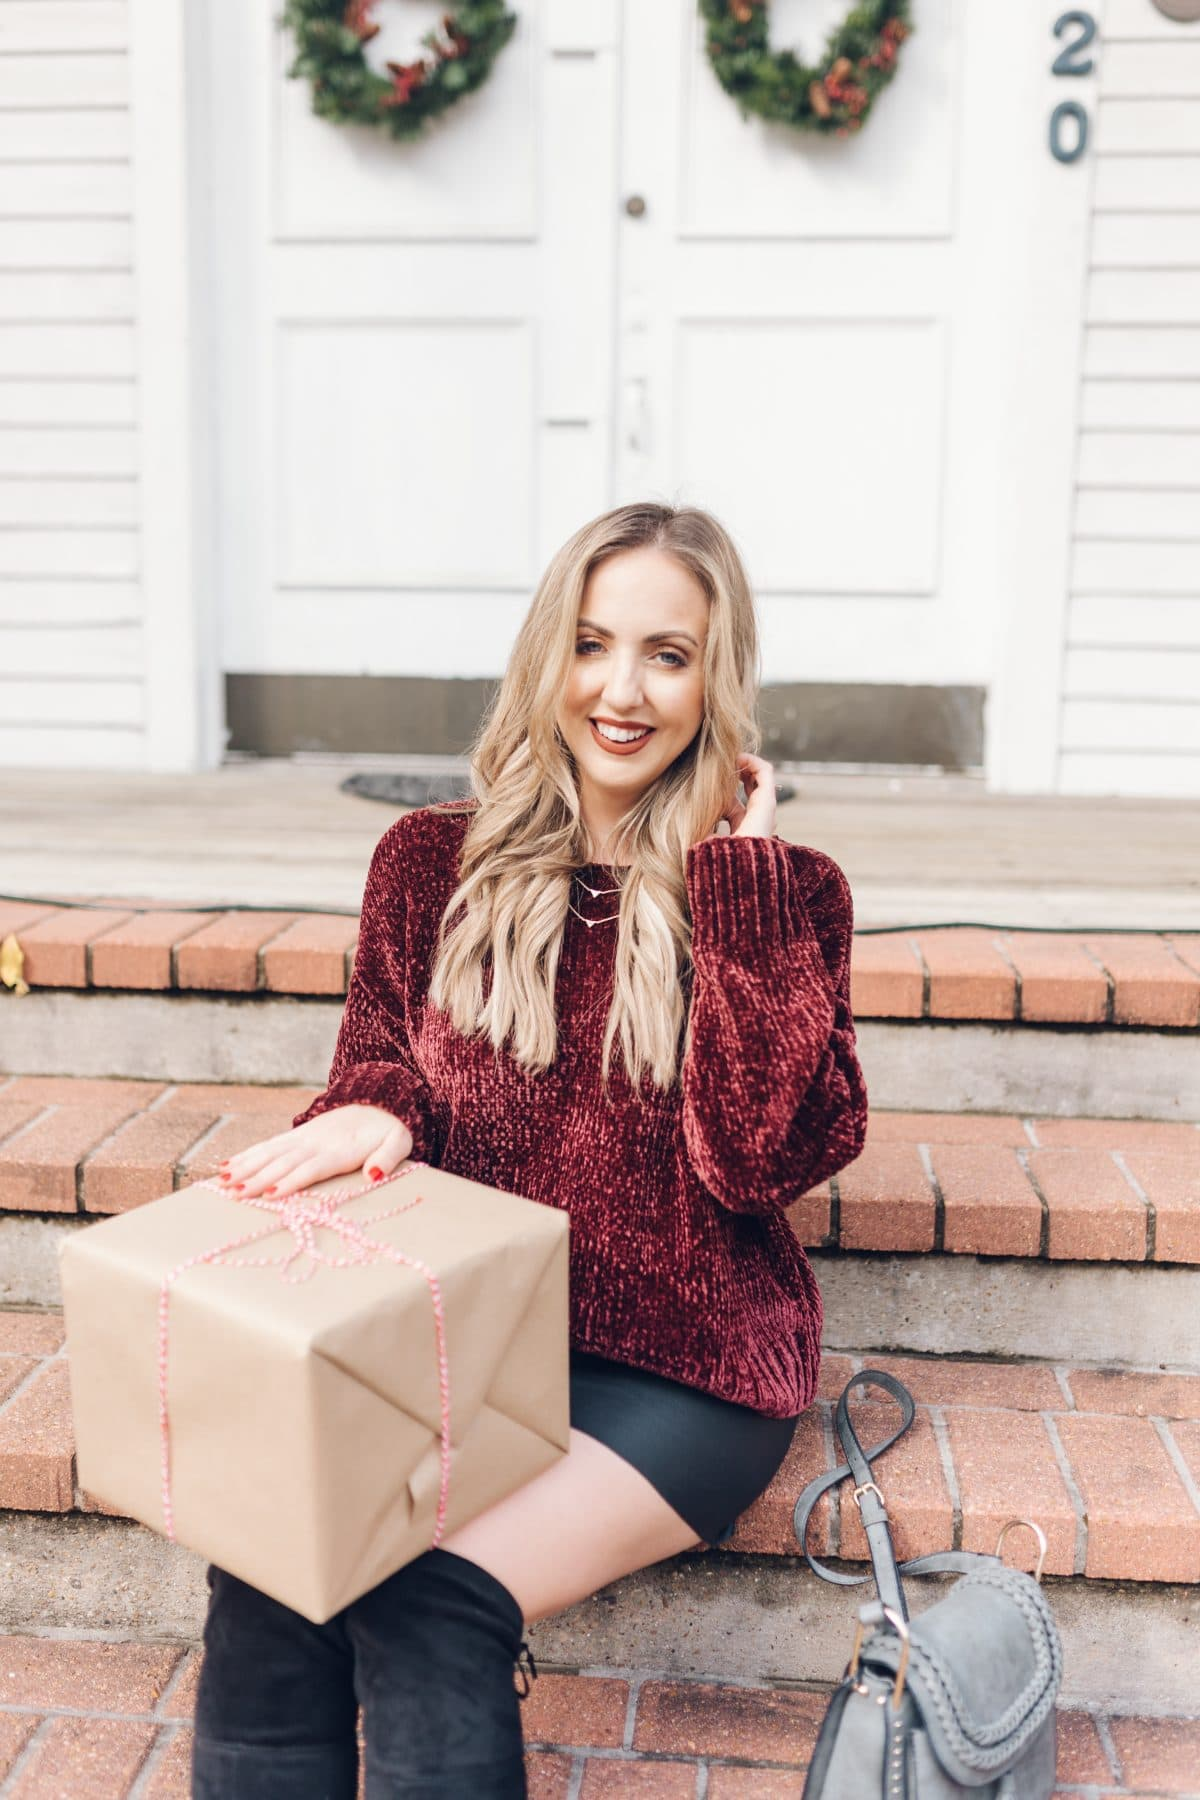 Houston blogger Meg O. on the Go shares a holiday outfit idea with a chenille sweater, faux leather skirt, and over the knee boots - all from Evereve